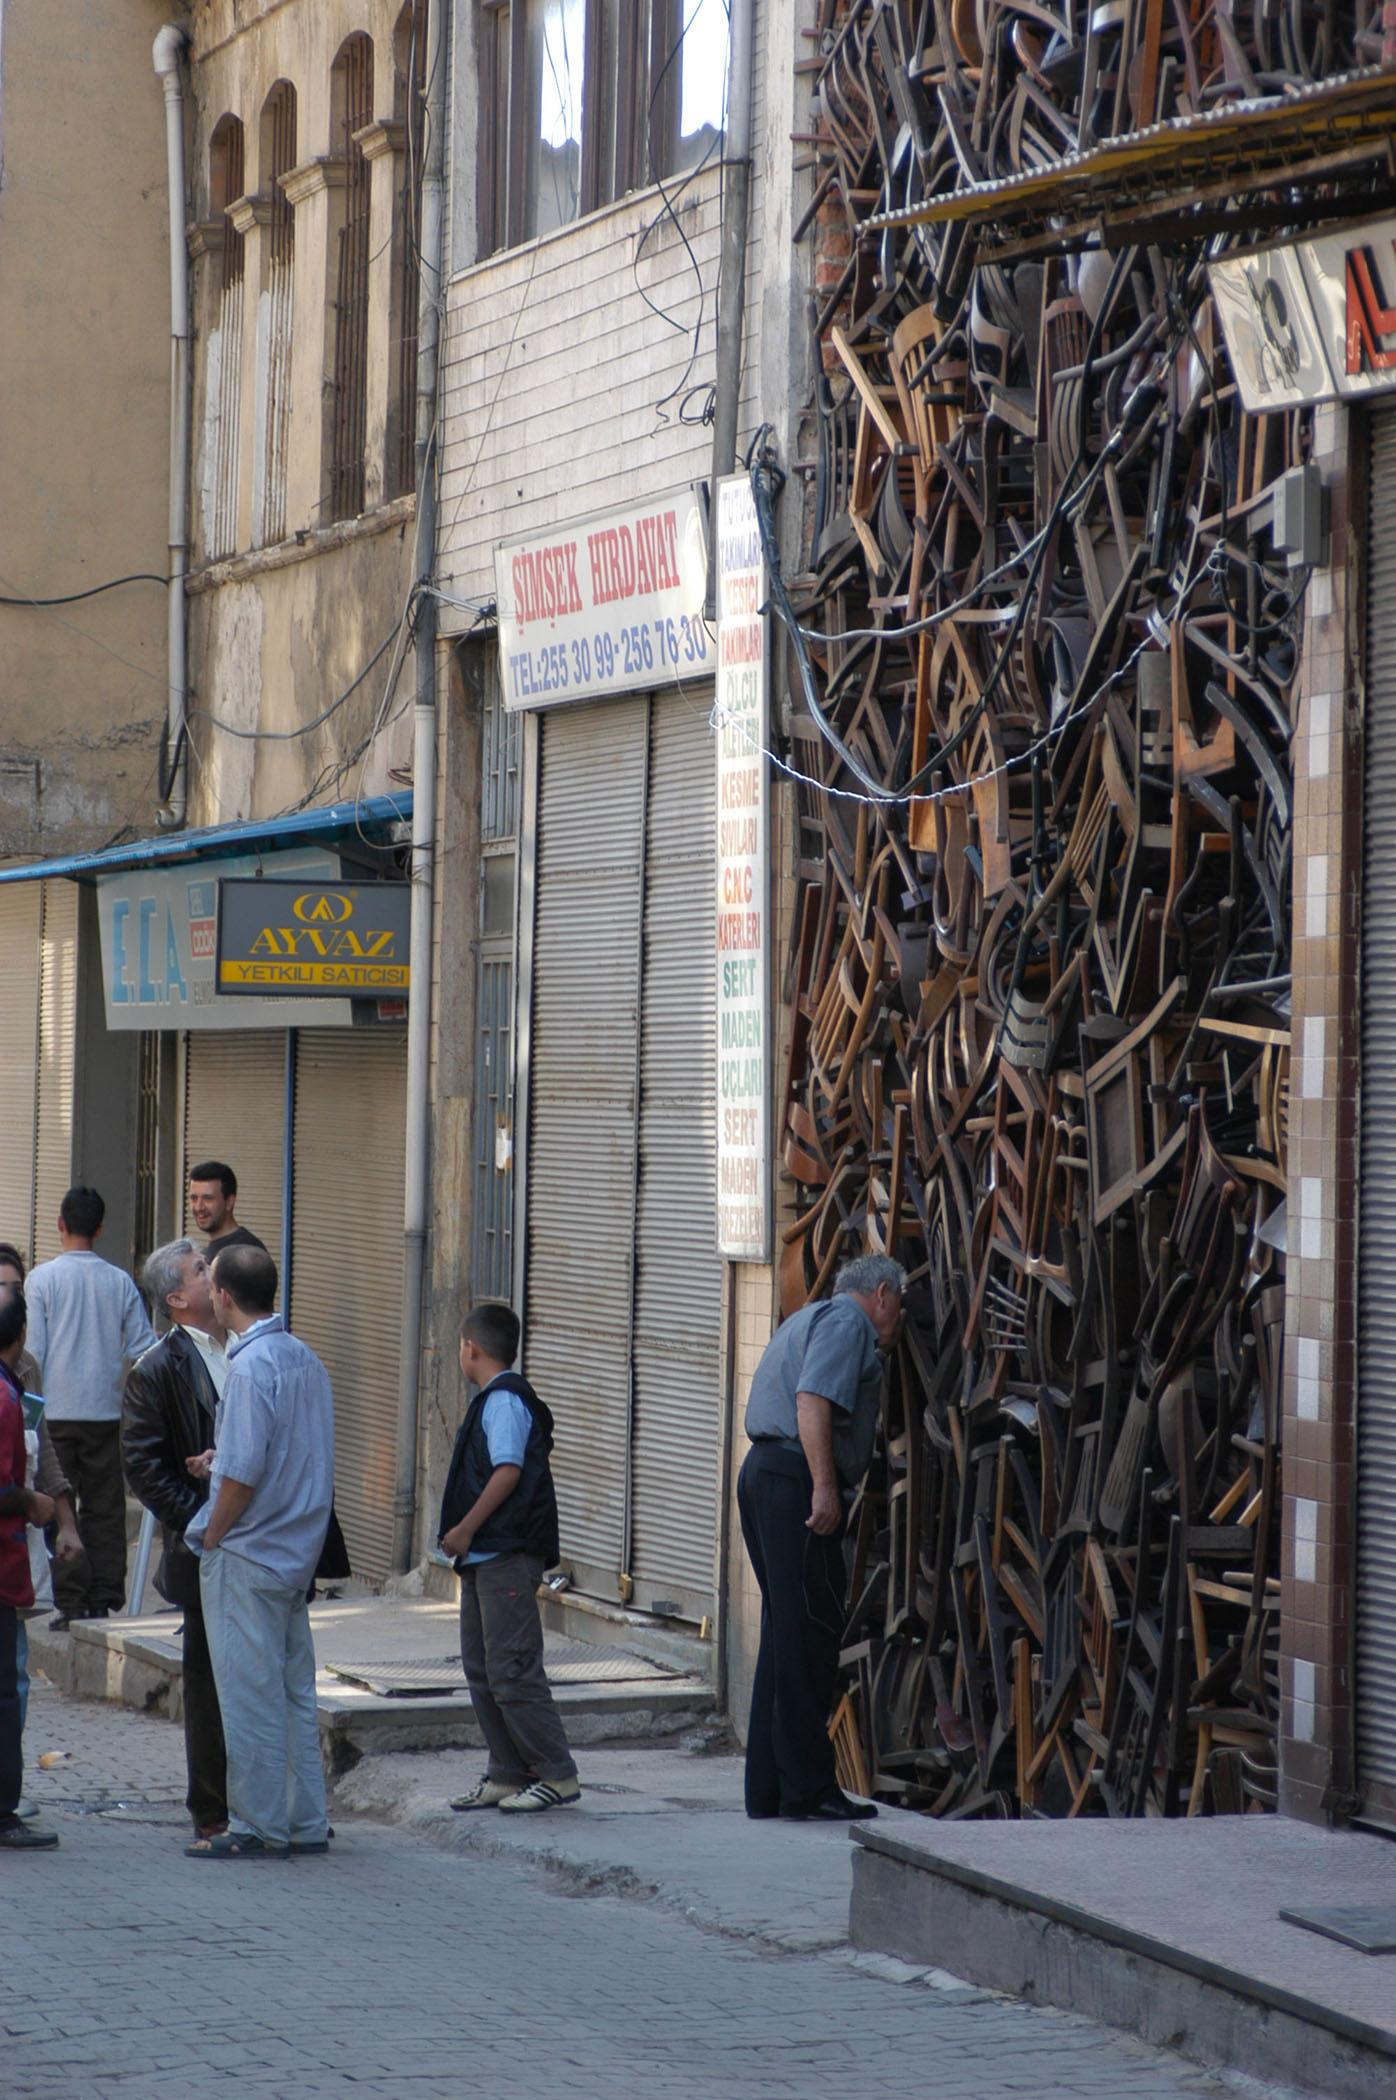 Several passerby on a street marvel at hundreds of chairs placed in a massive pile between two buildings.